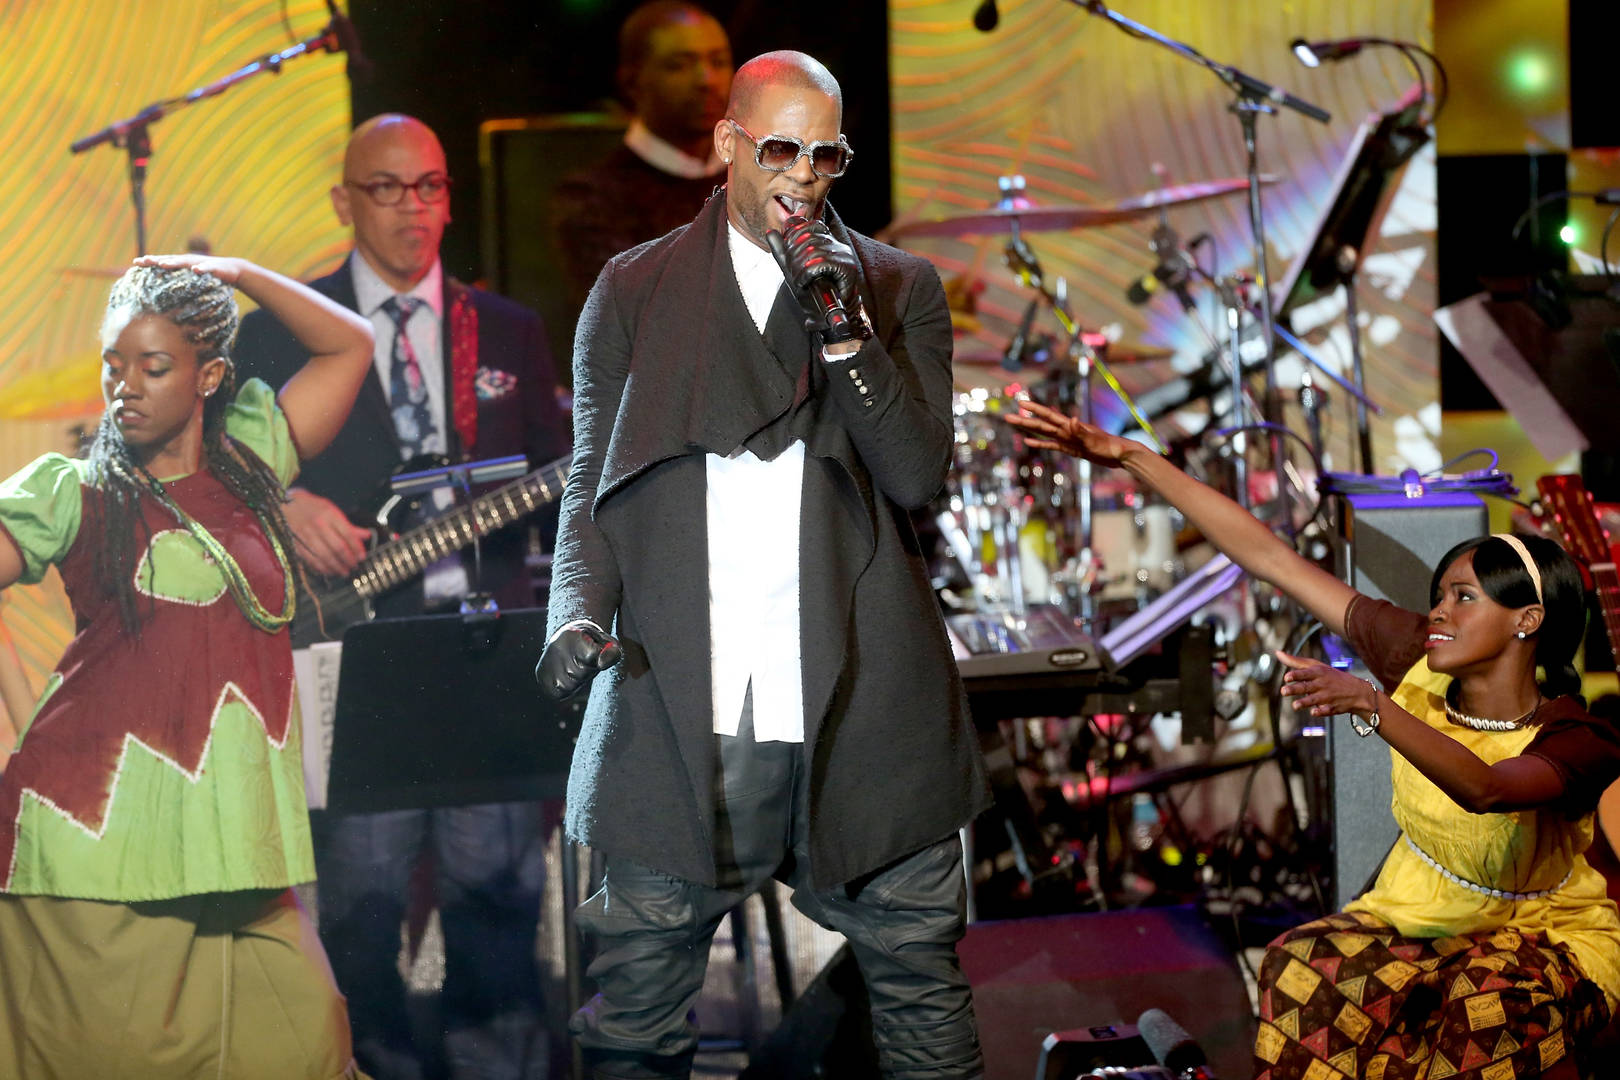 R. Kelly's streams increase after docu-series alleges abuse